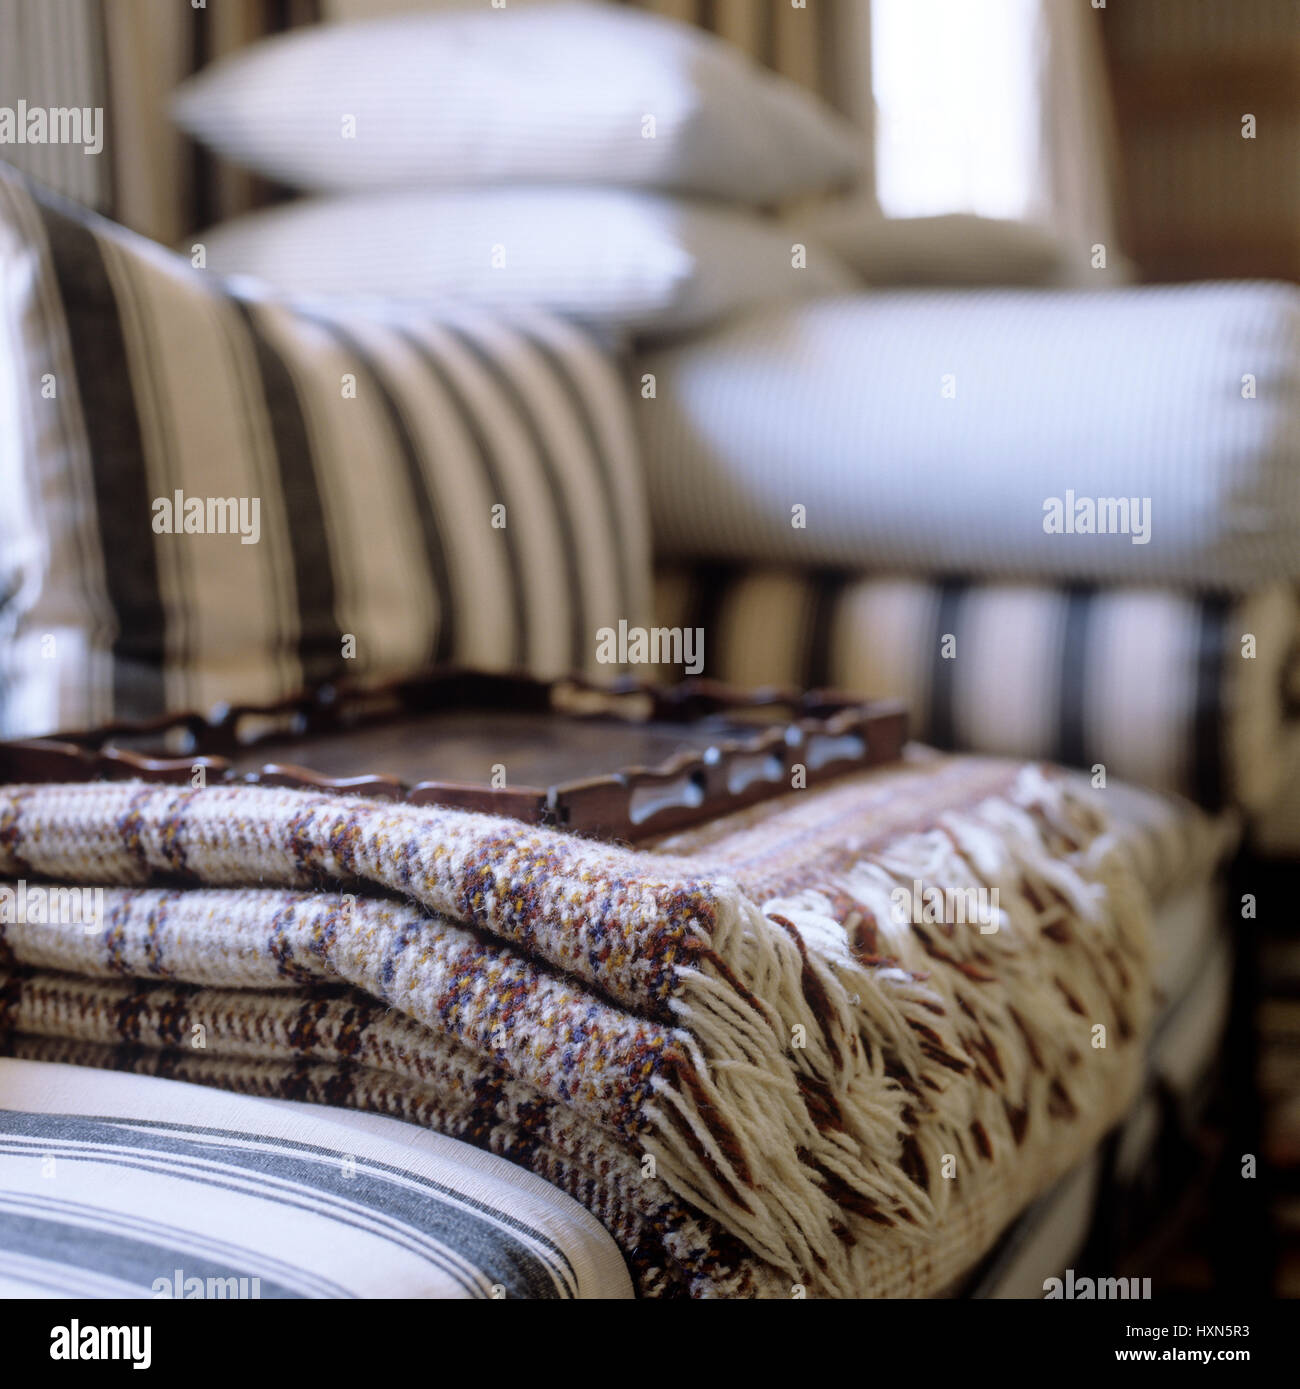 Blanket and tray on striped sofa Stock Photo: 136919191 - Alamy